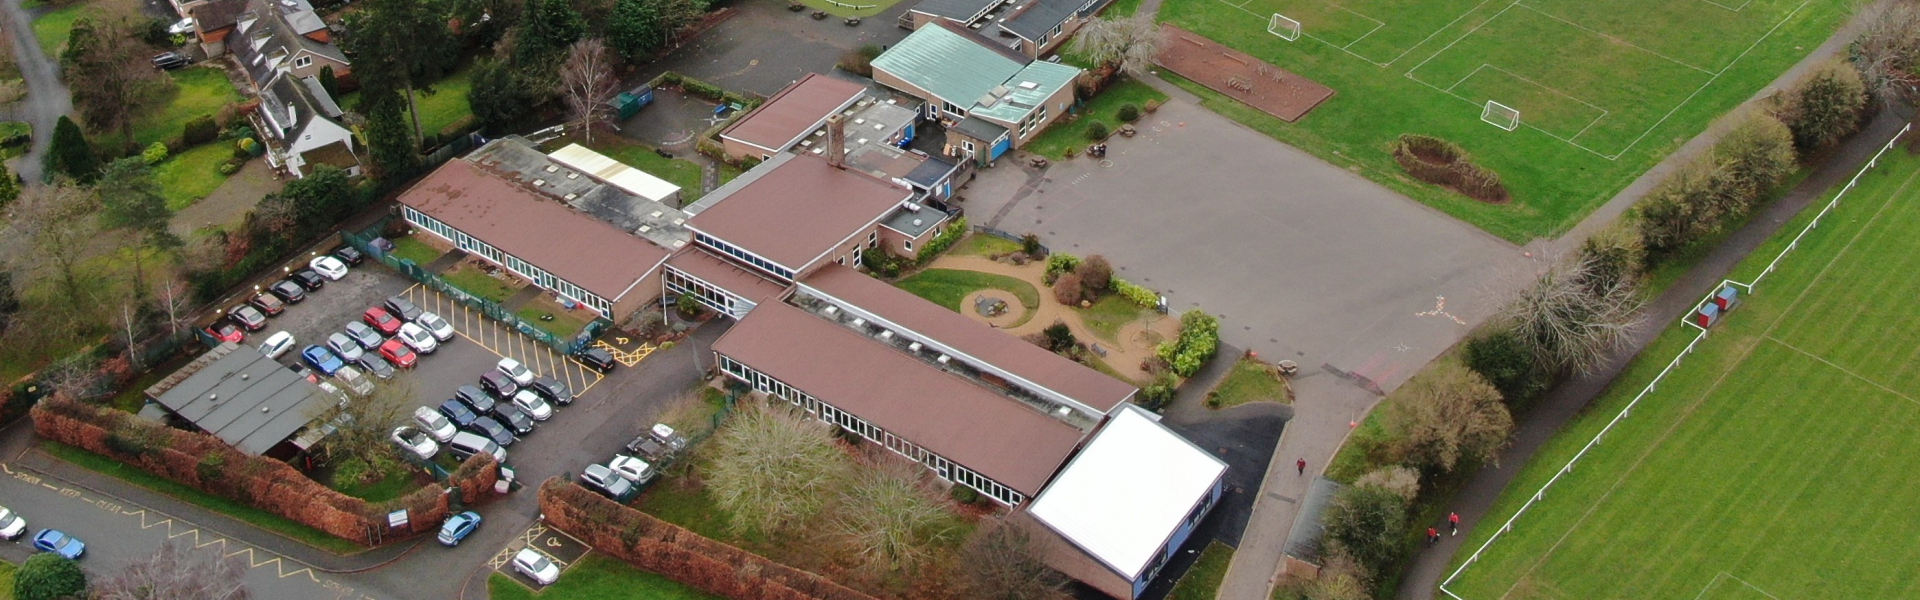 Aerial Shot of School